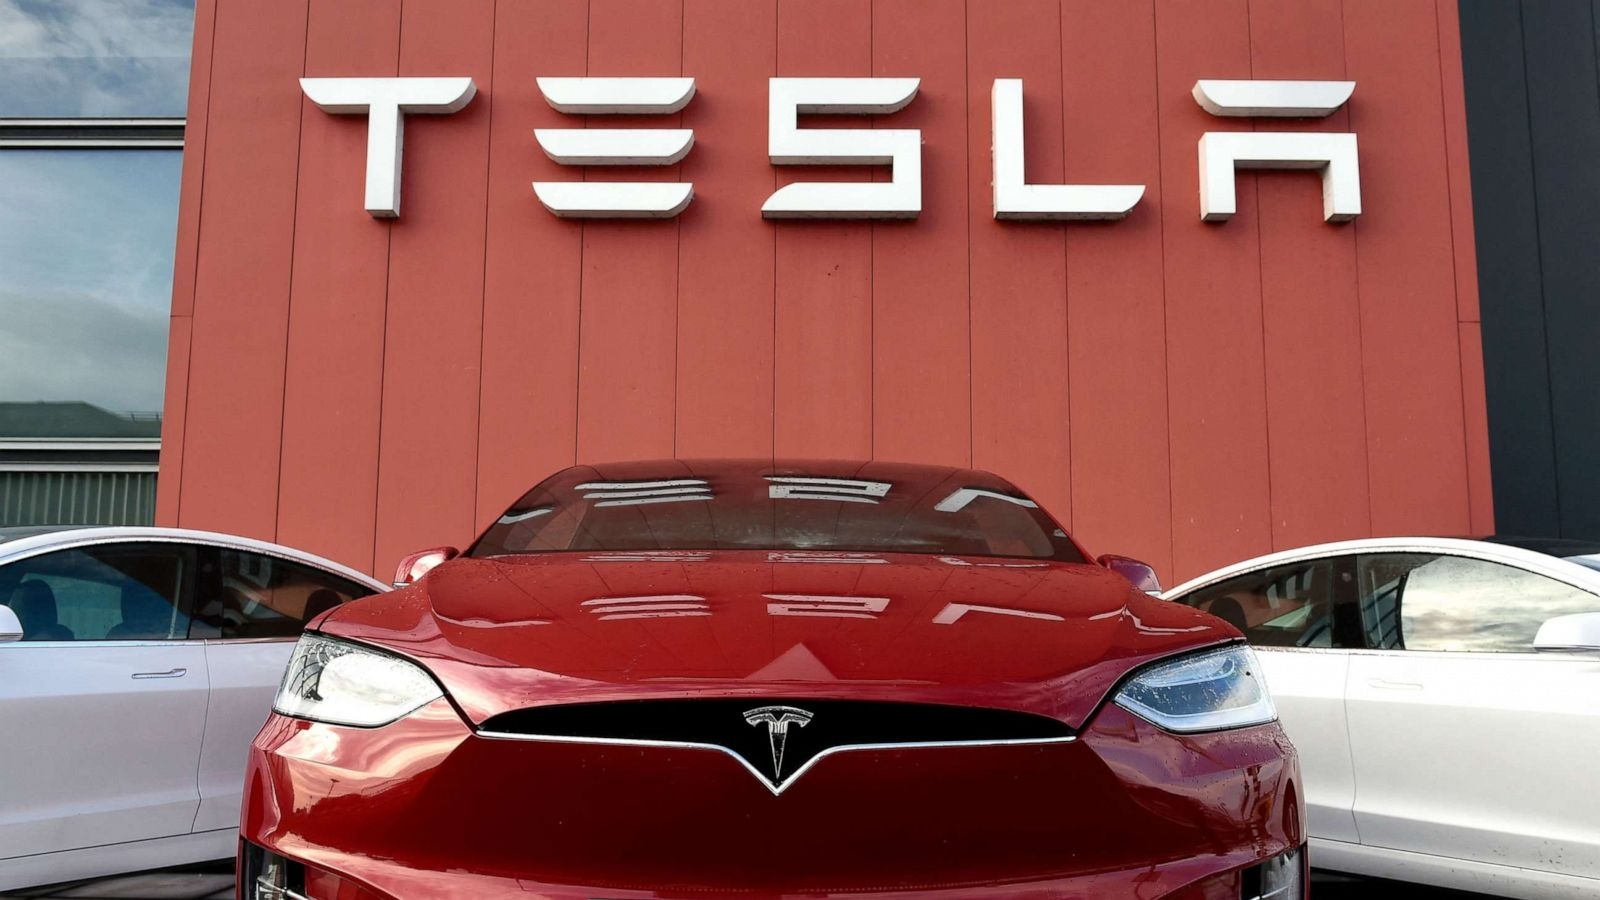 abcnews.go.com - Catherine Thorbecke - Customers can soon rent a Tesla at Hertz after company orders 100,000 electric vehicles